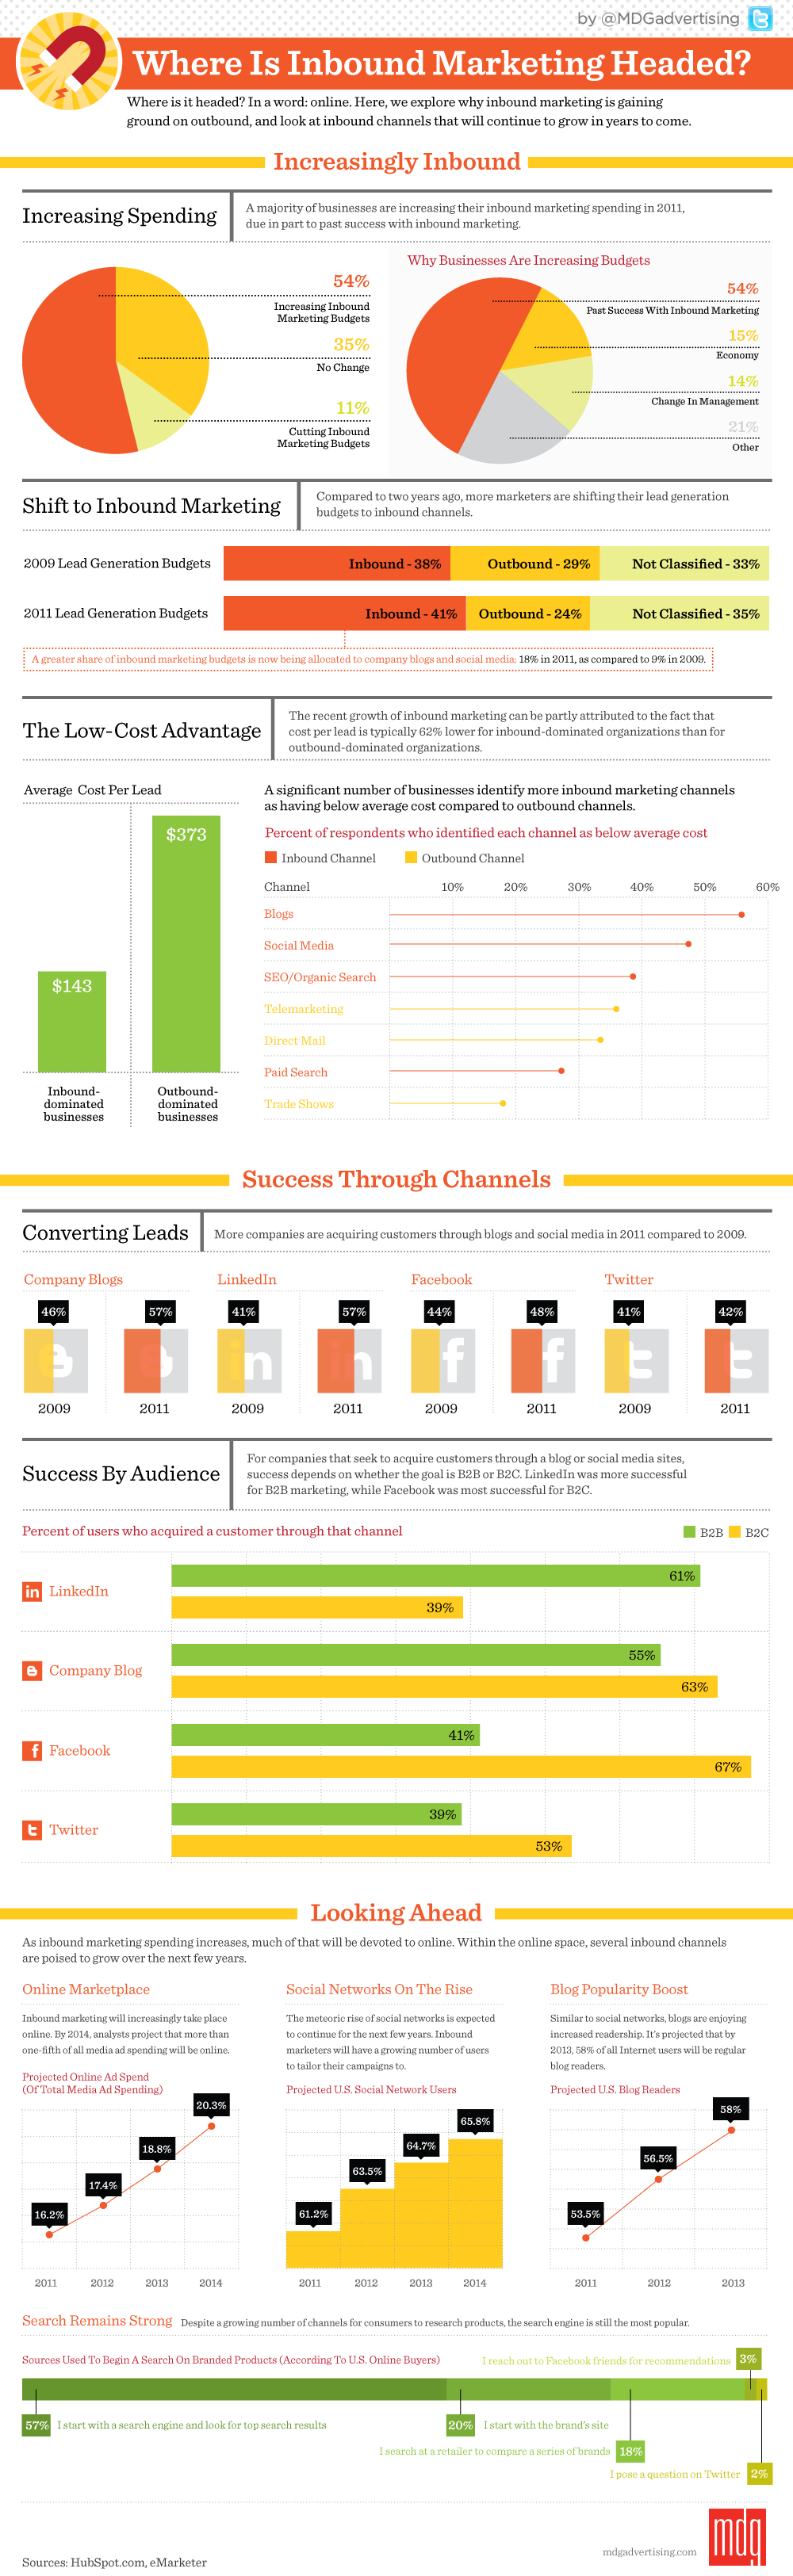 Where Is Inbound Marketing Headed?